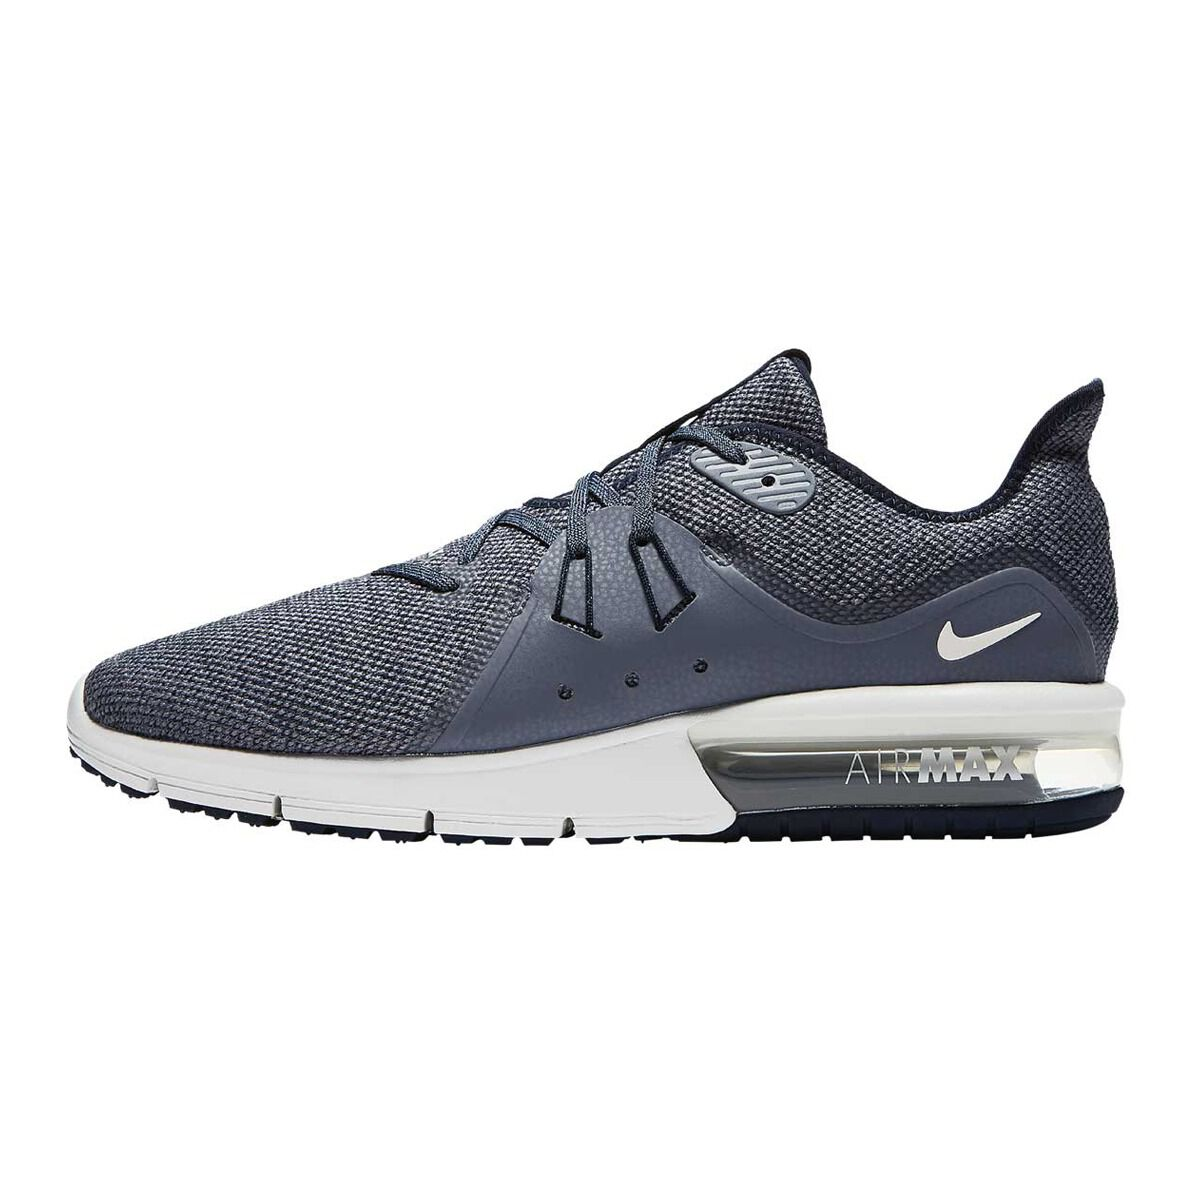 Nike Air Max Sequent 3 Mens Running Shoes